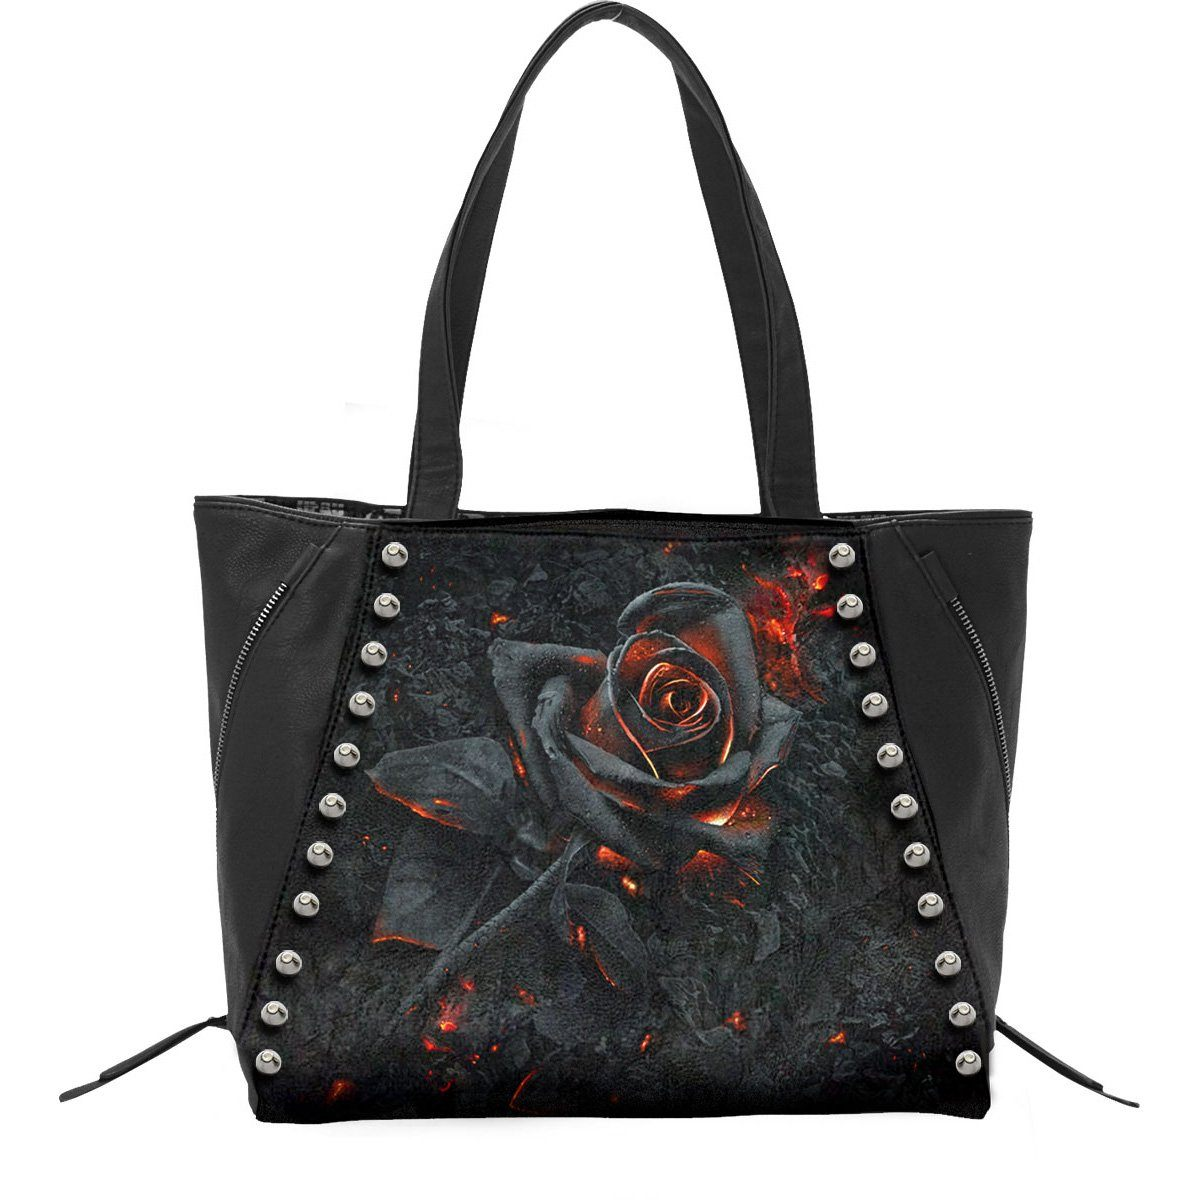 Burning Rose Leather Tote Bag - Rebels Depot